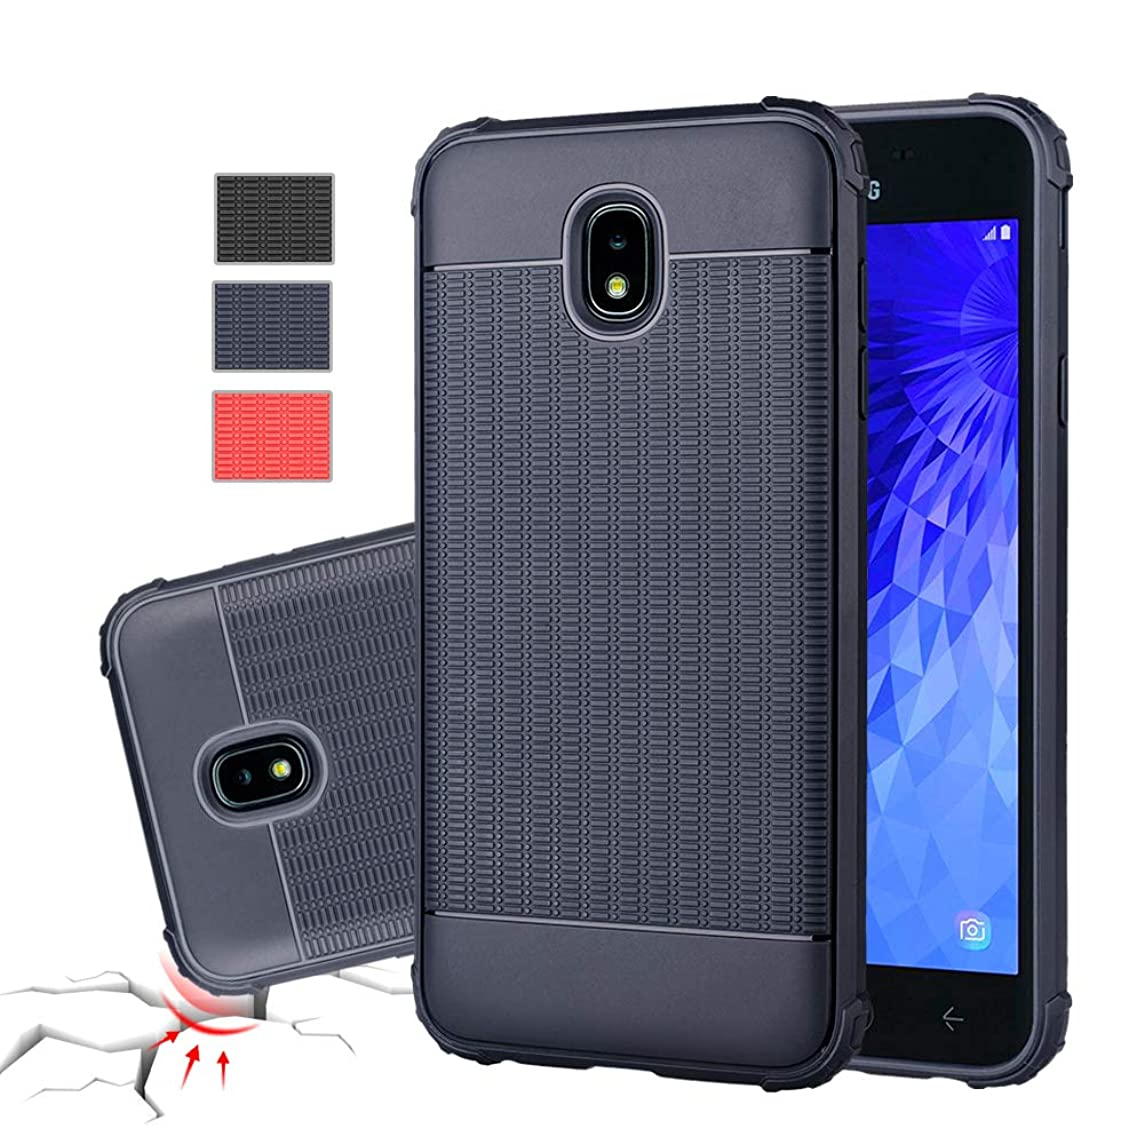 Galaxy J7 2018 Case,Galaxy J7 Refine Case,Galaxy J7 Star Case,J7 Crown Case,Galaxy J7 V J7V 2nd Gen Case,J7 Aura Case,Rebex Flexible and Durable Shock Thin Absorption Cover Protective (Navy)